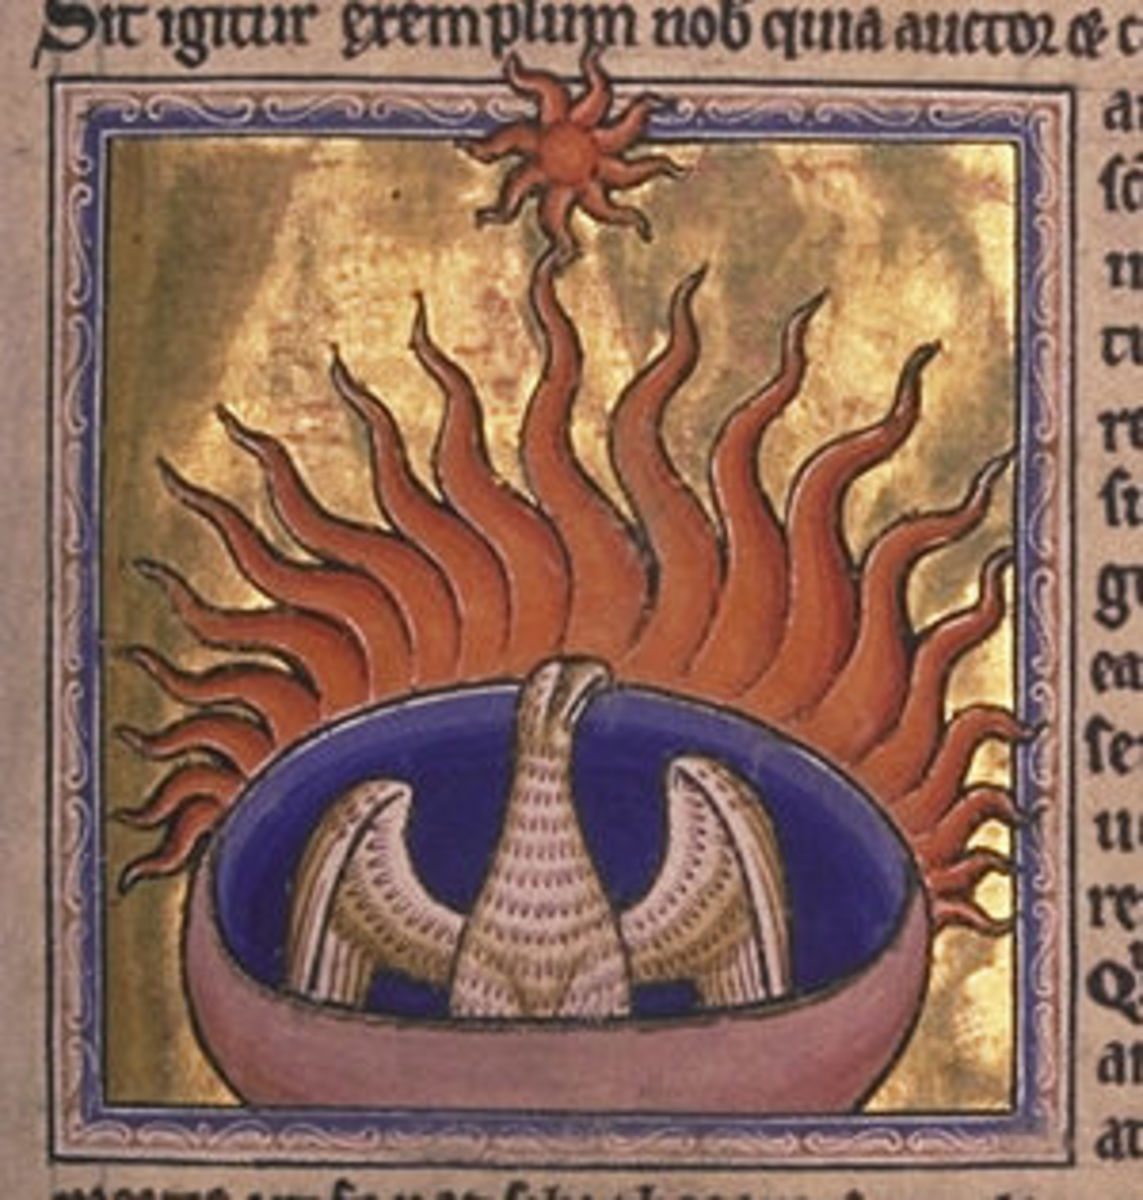 The phoenix - detail from the Aberdeen Bestiary.